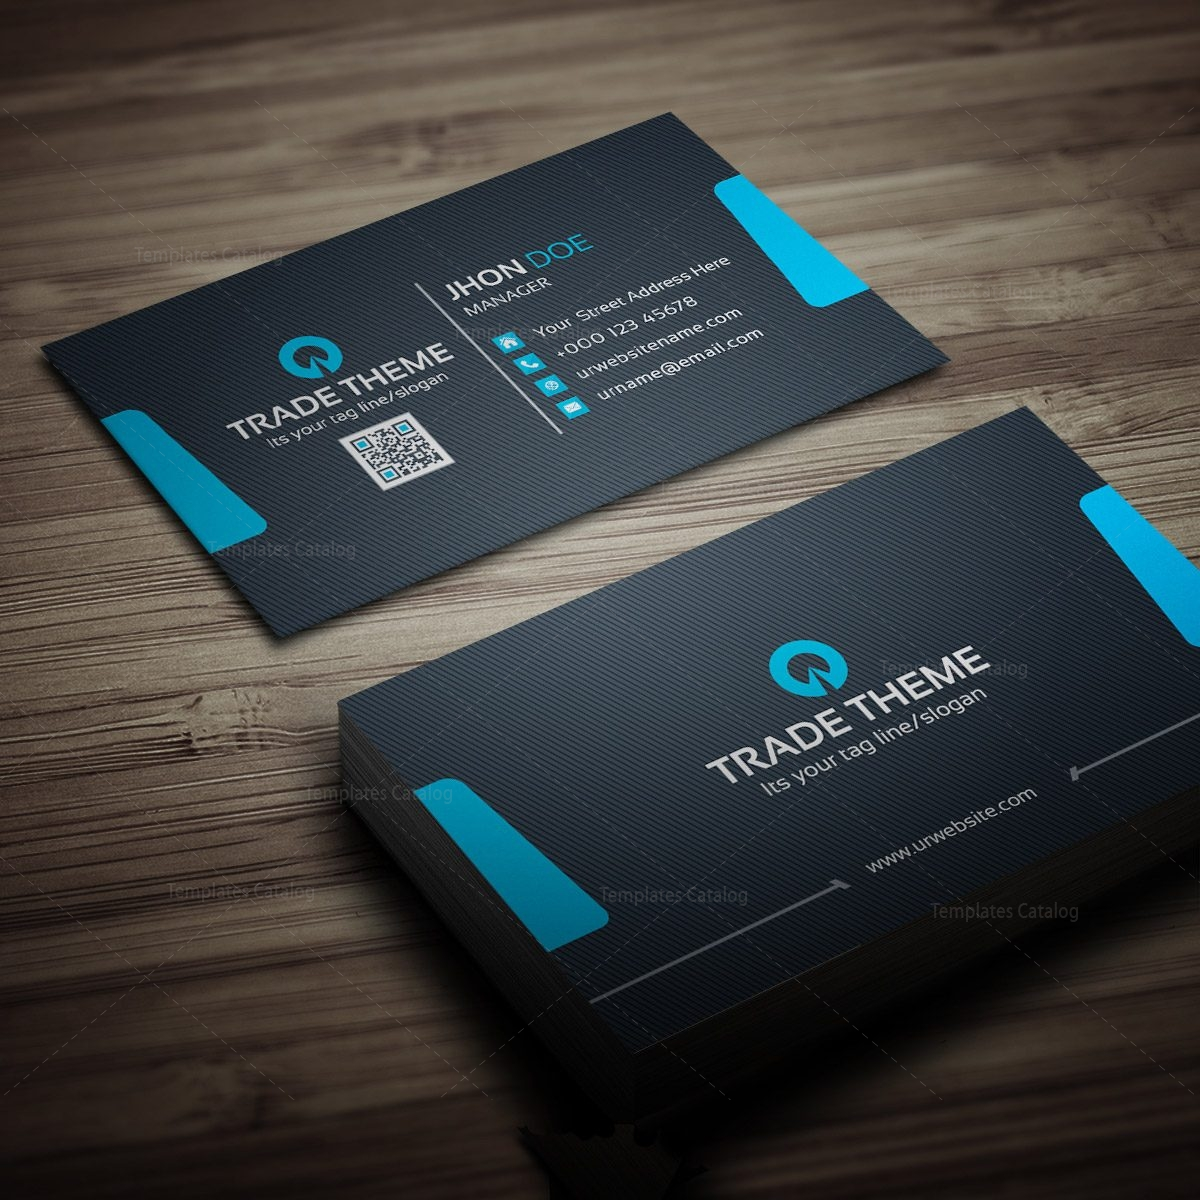 internet business card template 000279 template catalog. Black Bedroom Furniture Sets. Home Design Ideas